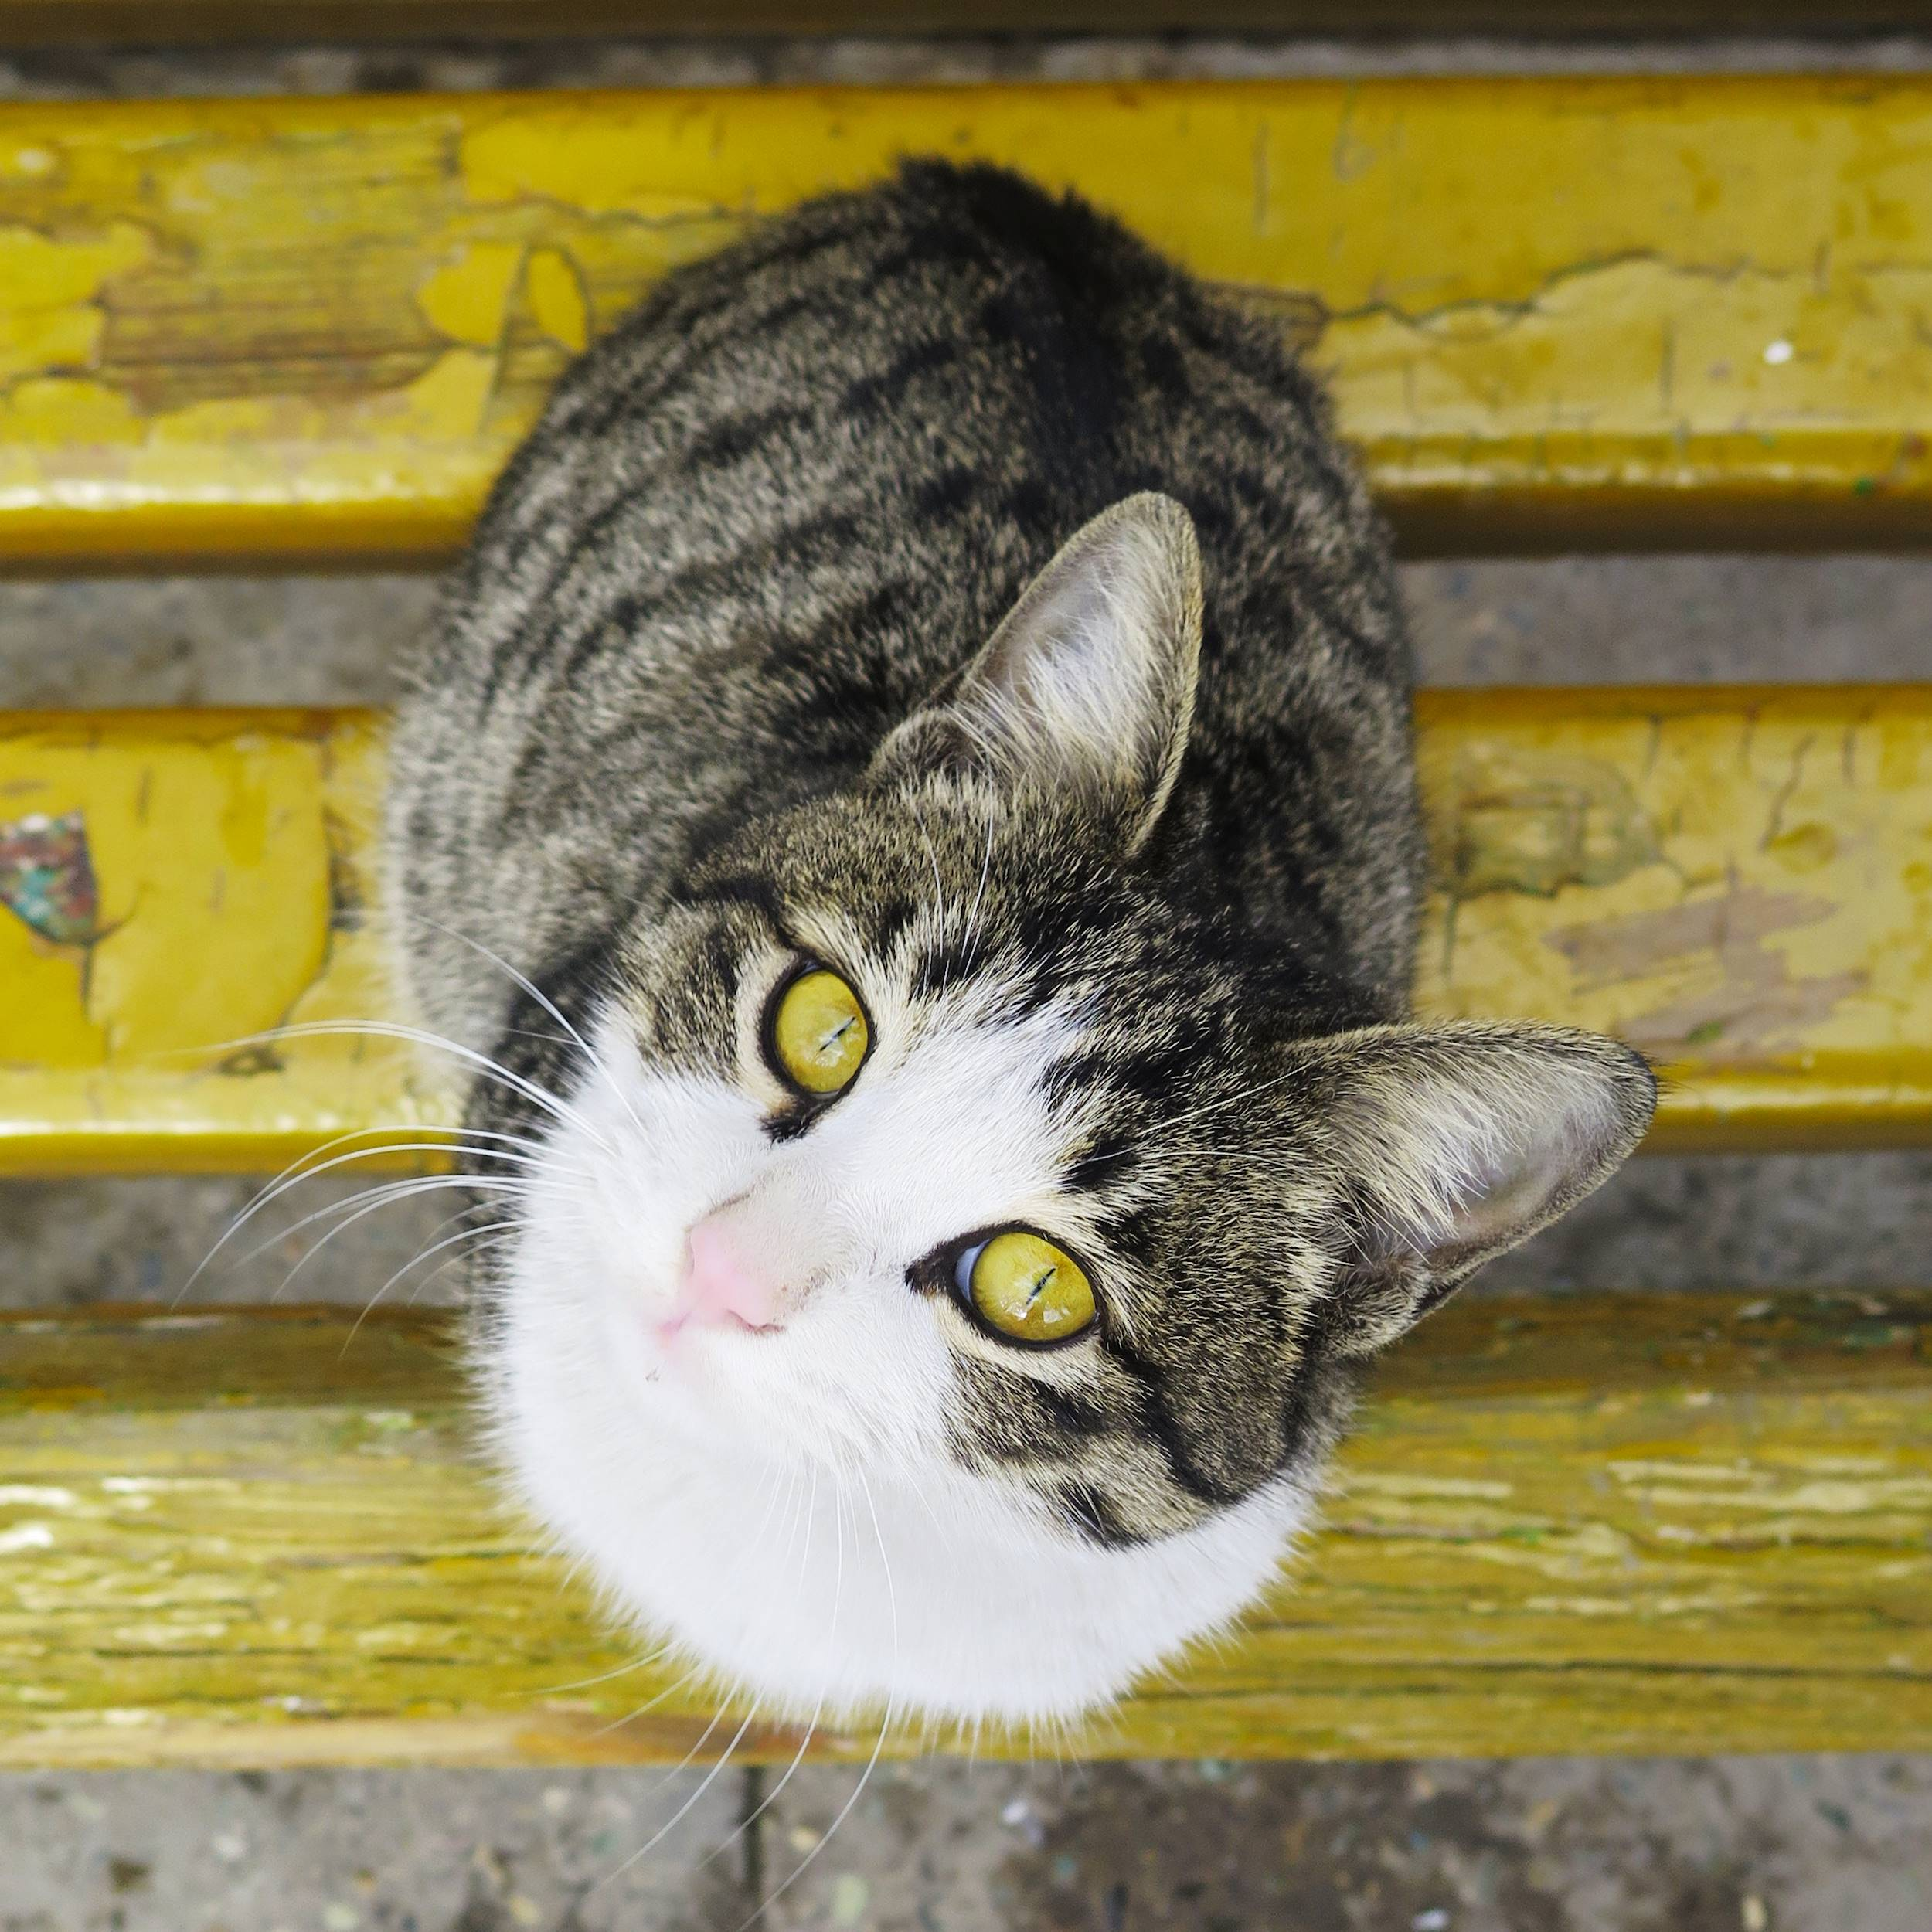 portrait photo of a cat with bright eyes sitting on a bench looking at the camera